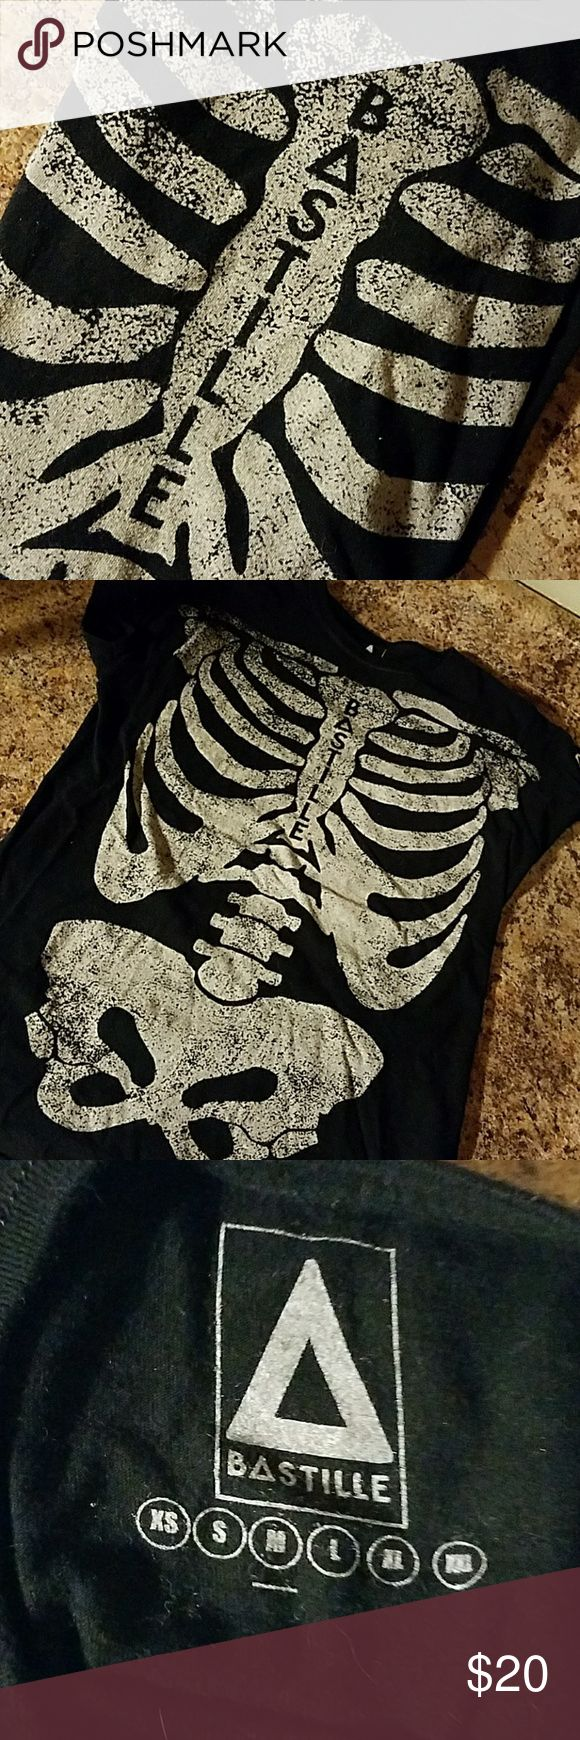 Bastille Band Tee Skeleton from Boston show 2014 Genuine Bastille Band Tee from the Boston show at BU in 2014 (might have been 2015, it was in the winter so it might have been Jan or Feb, I don't remember exactly 😮). Has a tight fit.  Asking $20. Make an offer! Bastille Tops Tees - Short Sleeve